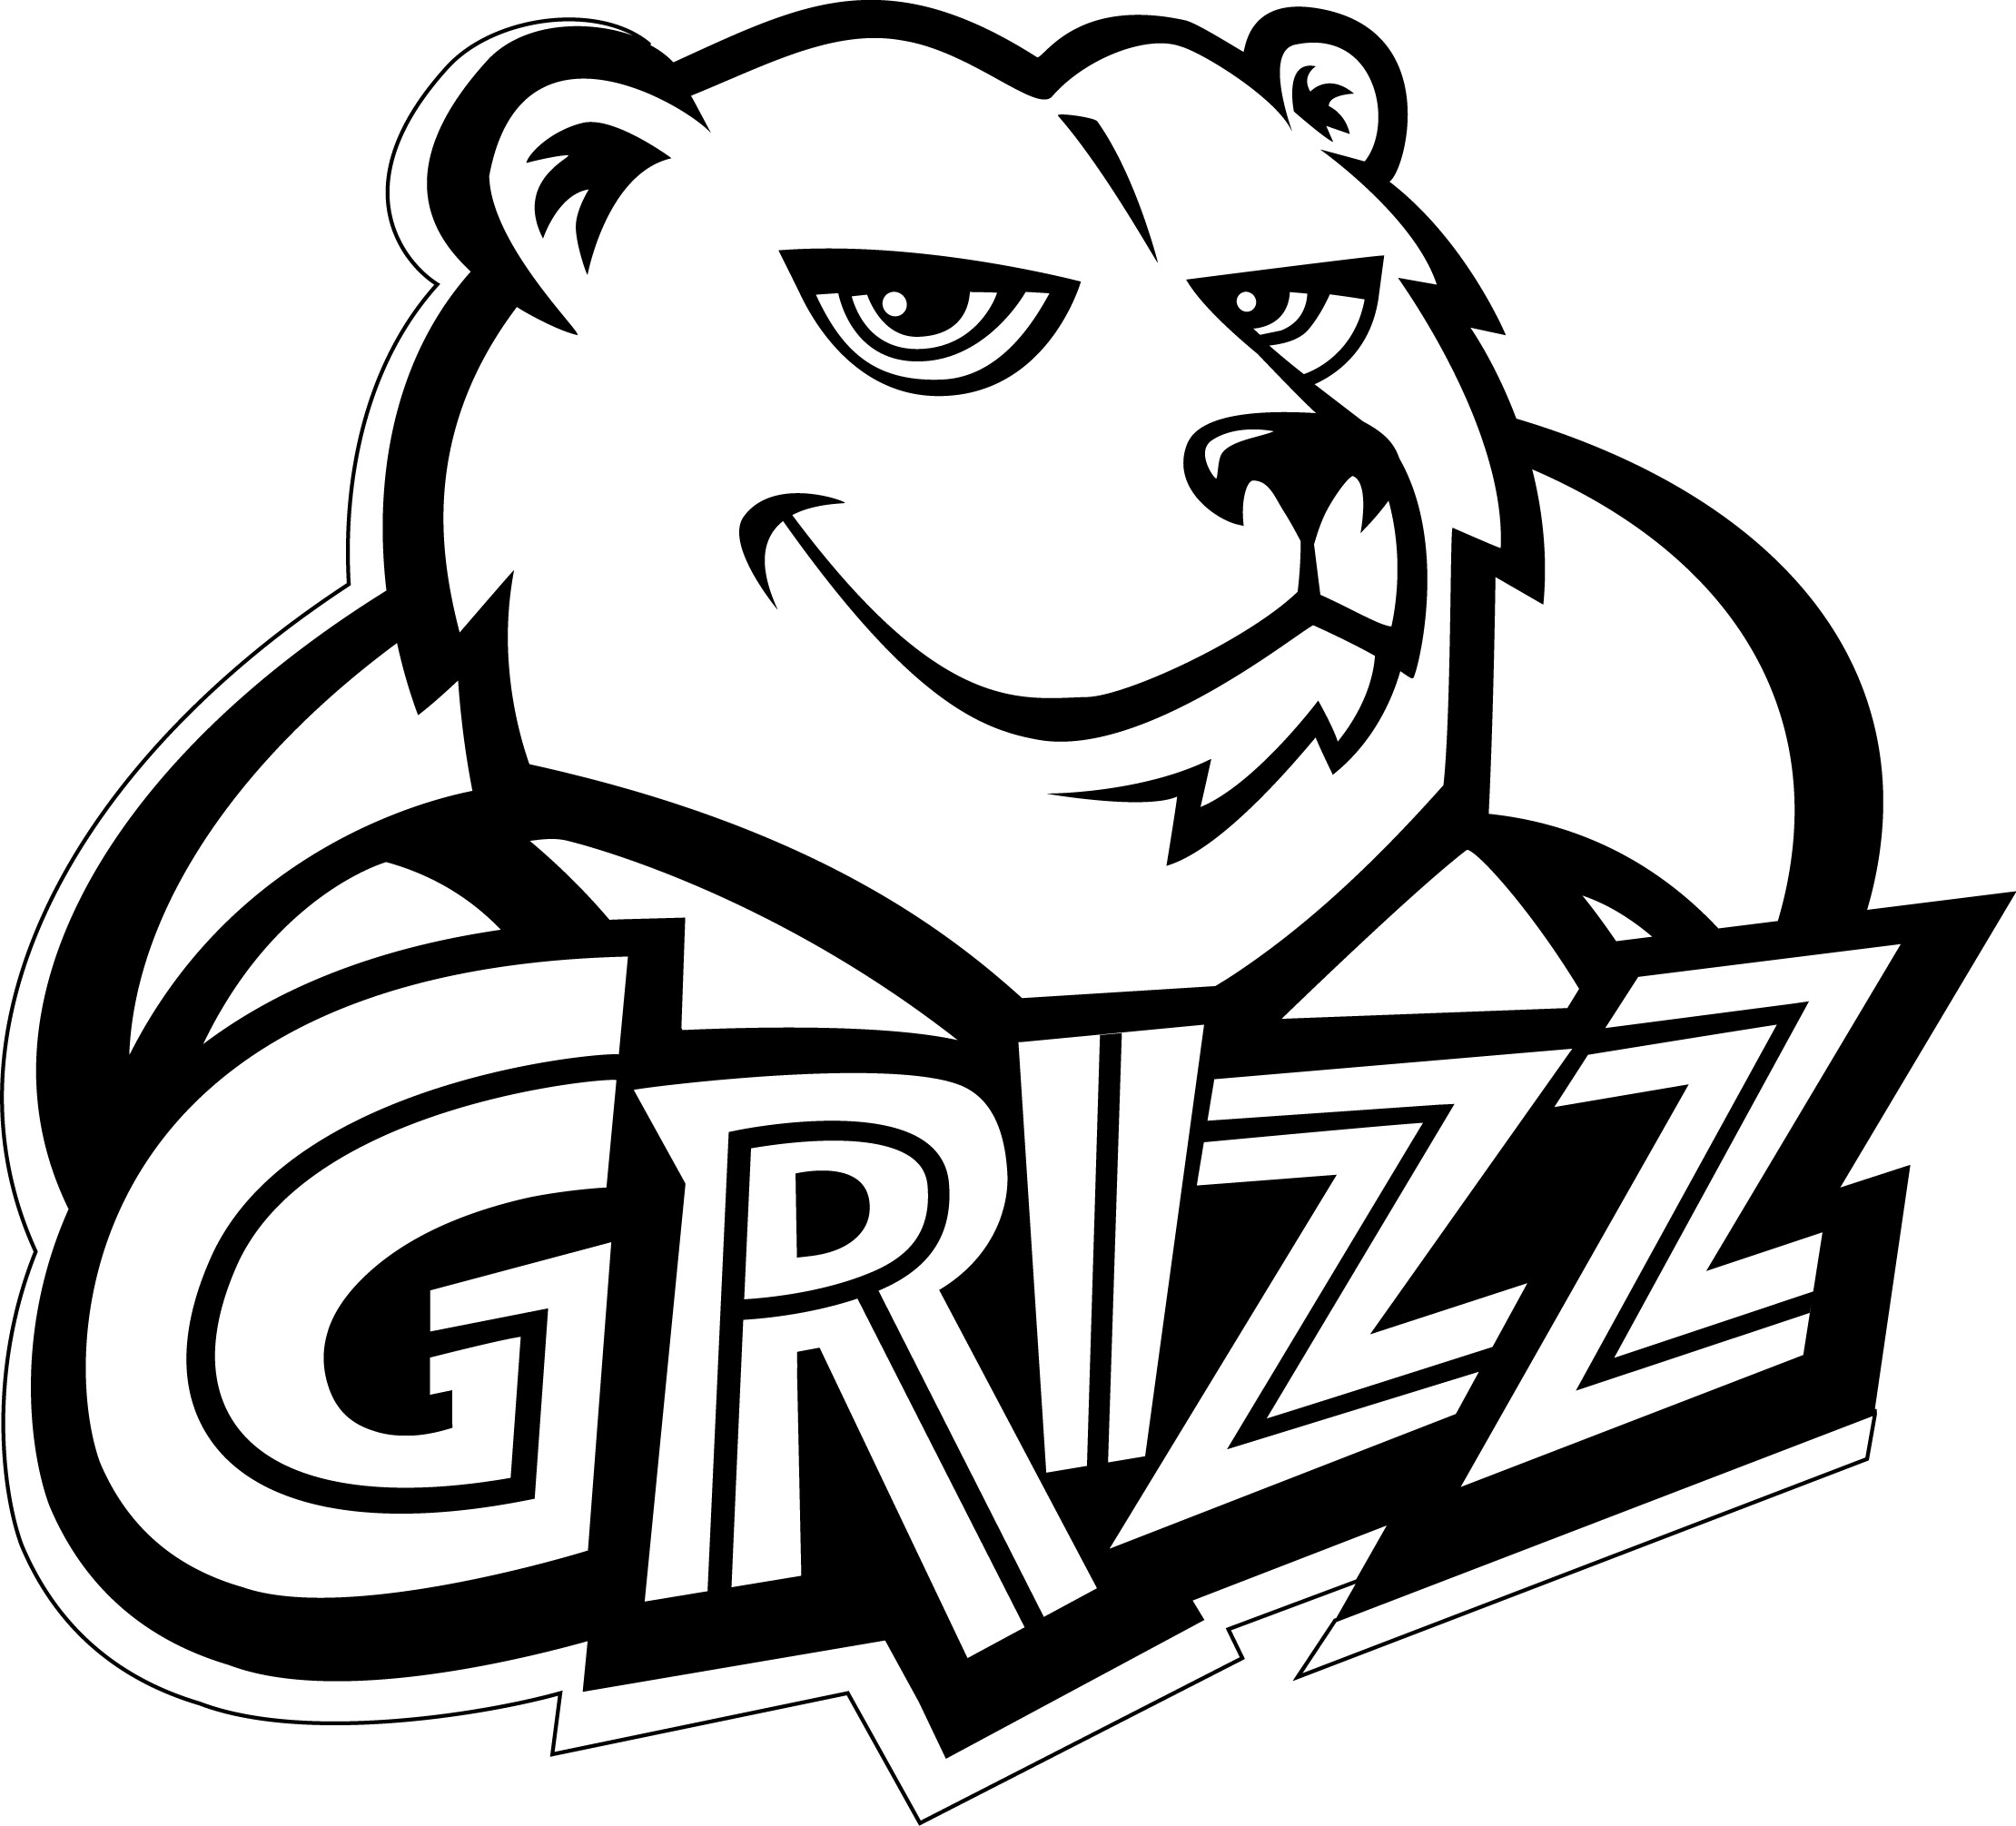 chicago bears coloring pages chicago bears logo coloring page kerra pages chicago bears coloring